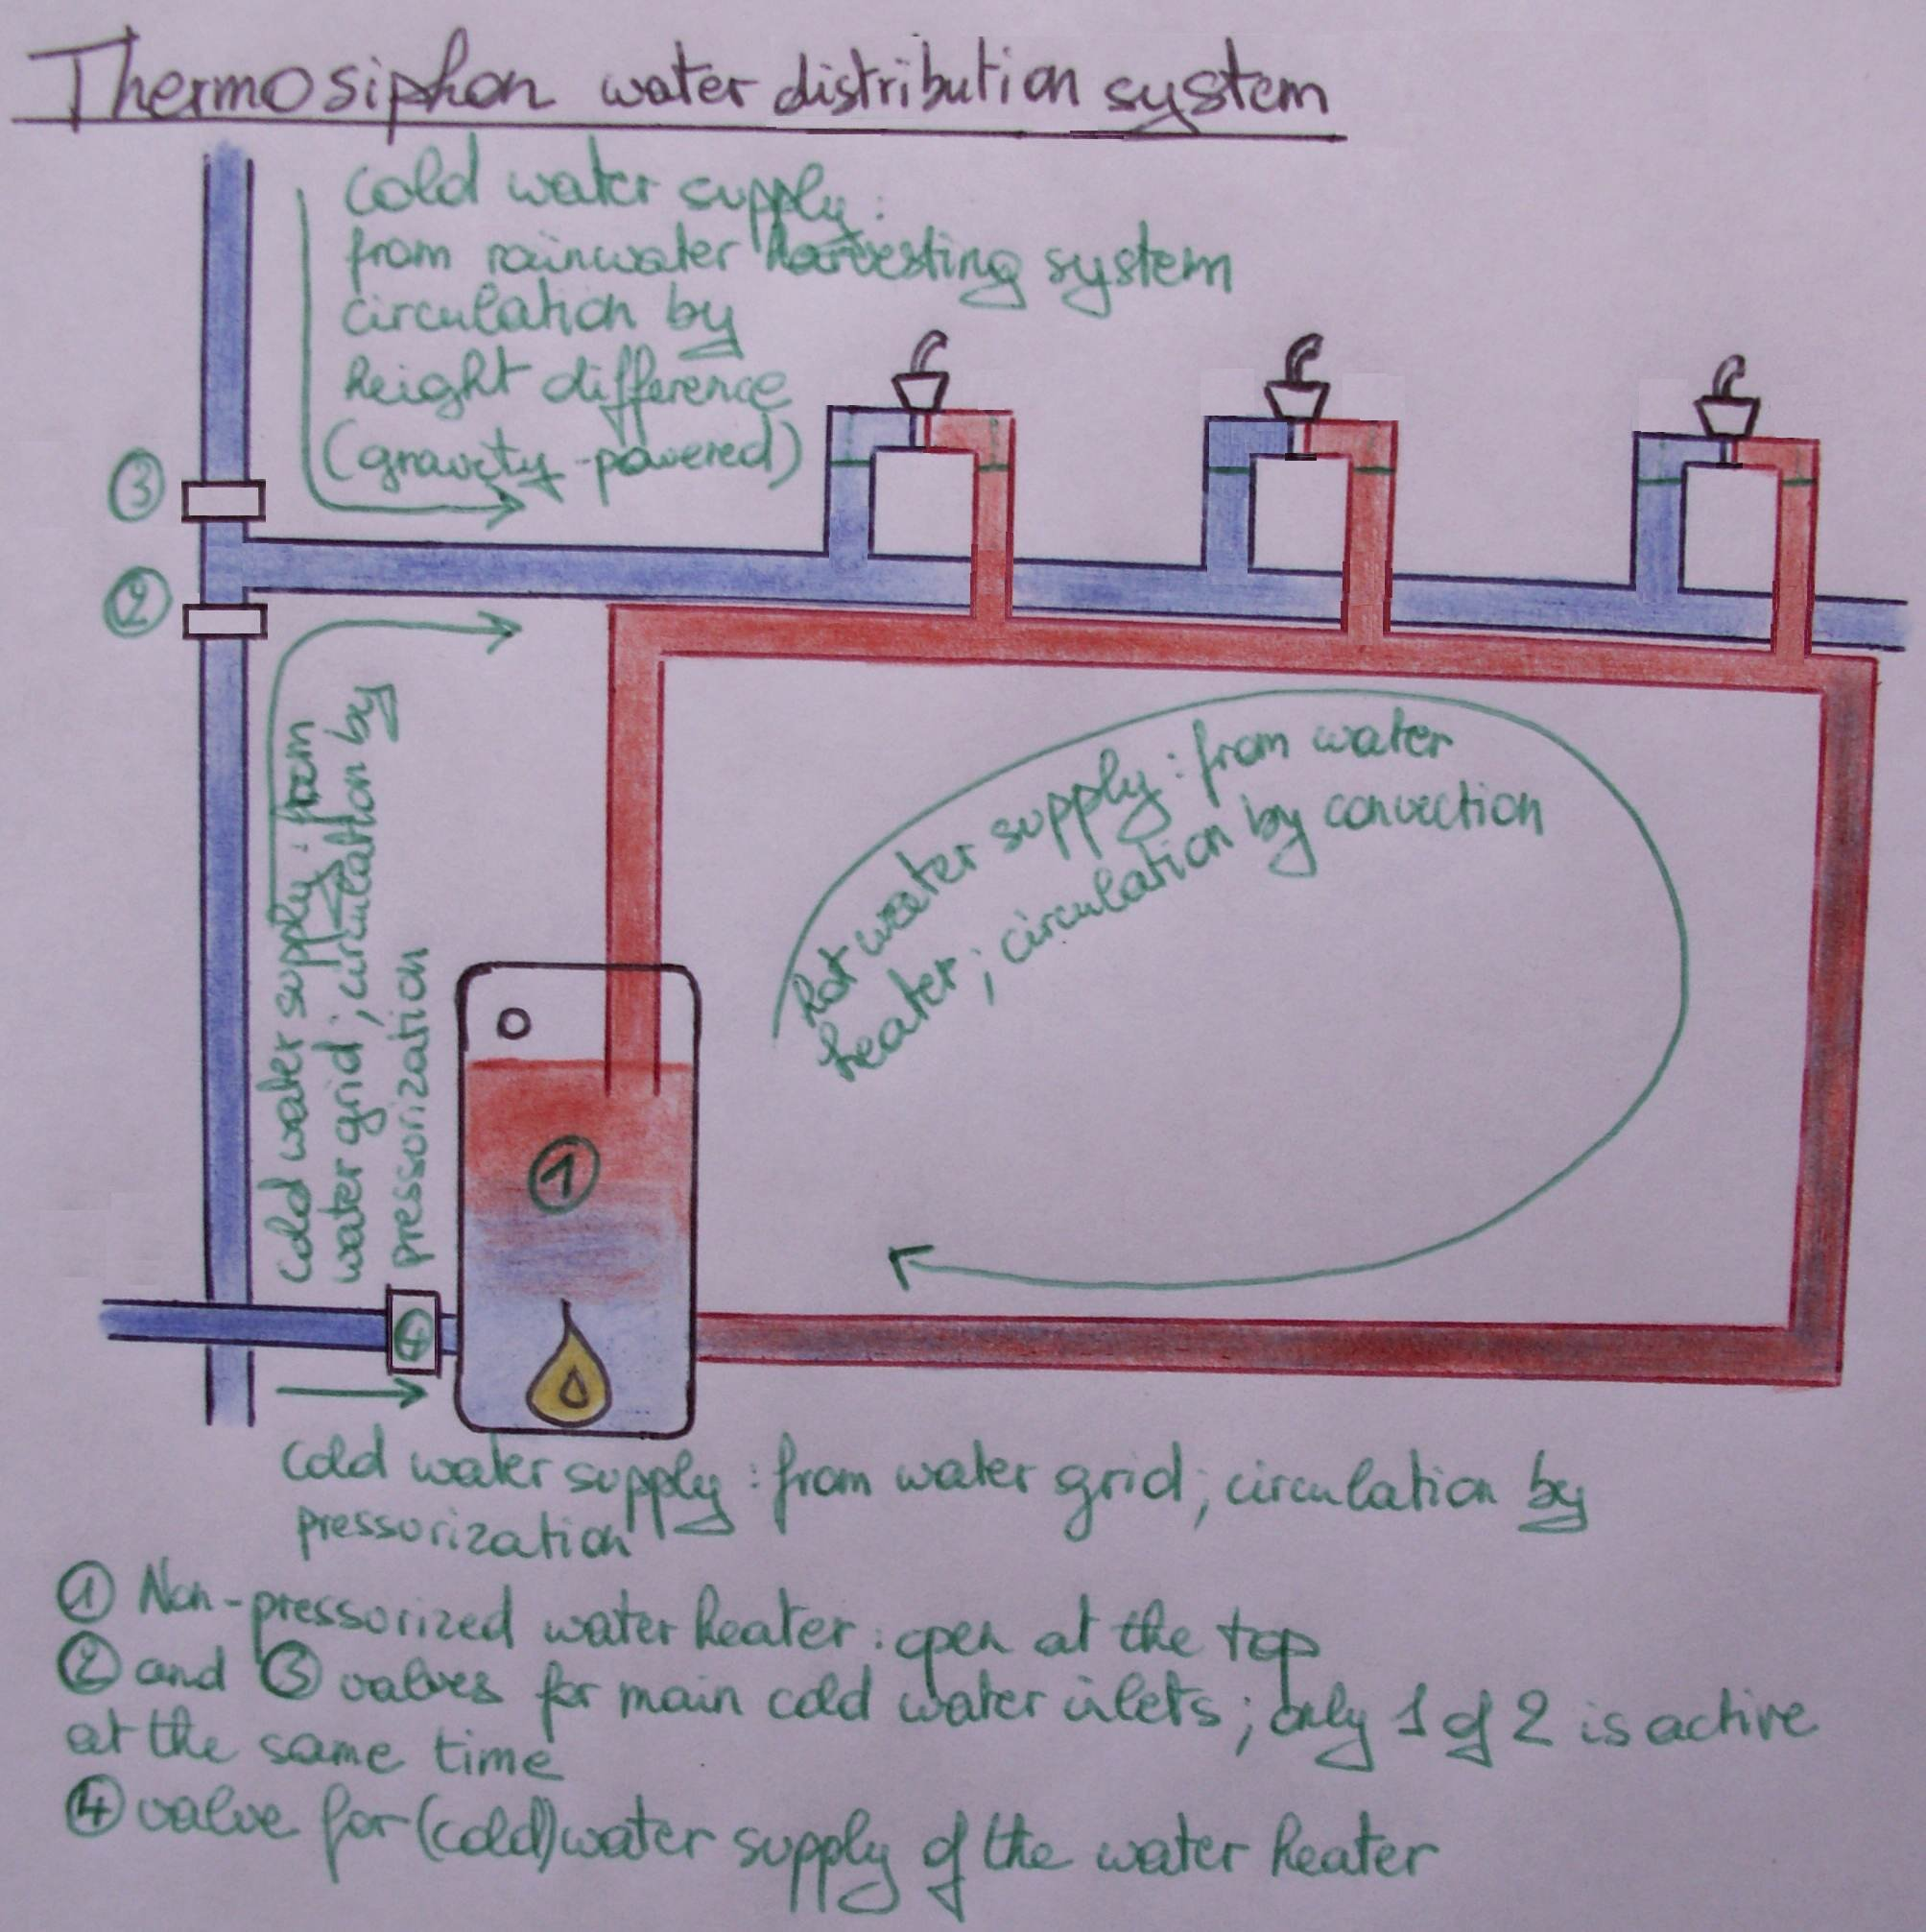 File:Thermosiphon water heating system.JPG Wikimedia Commons #7F3D47